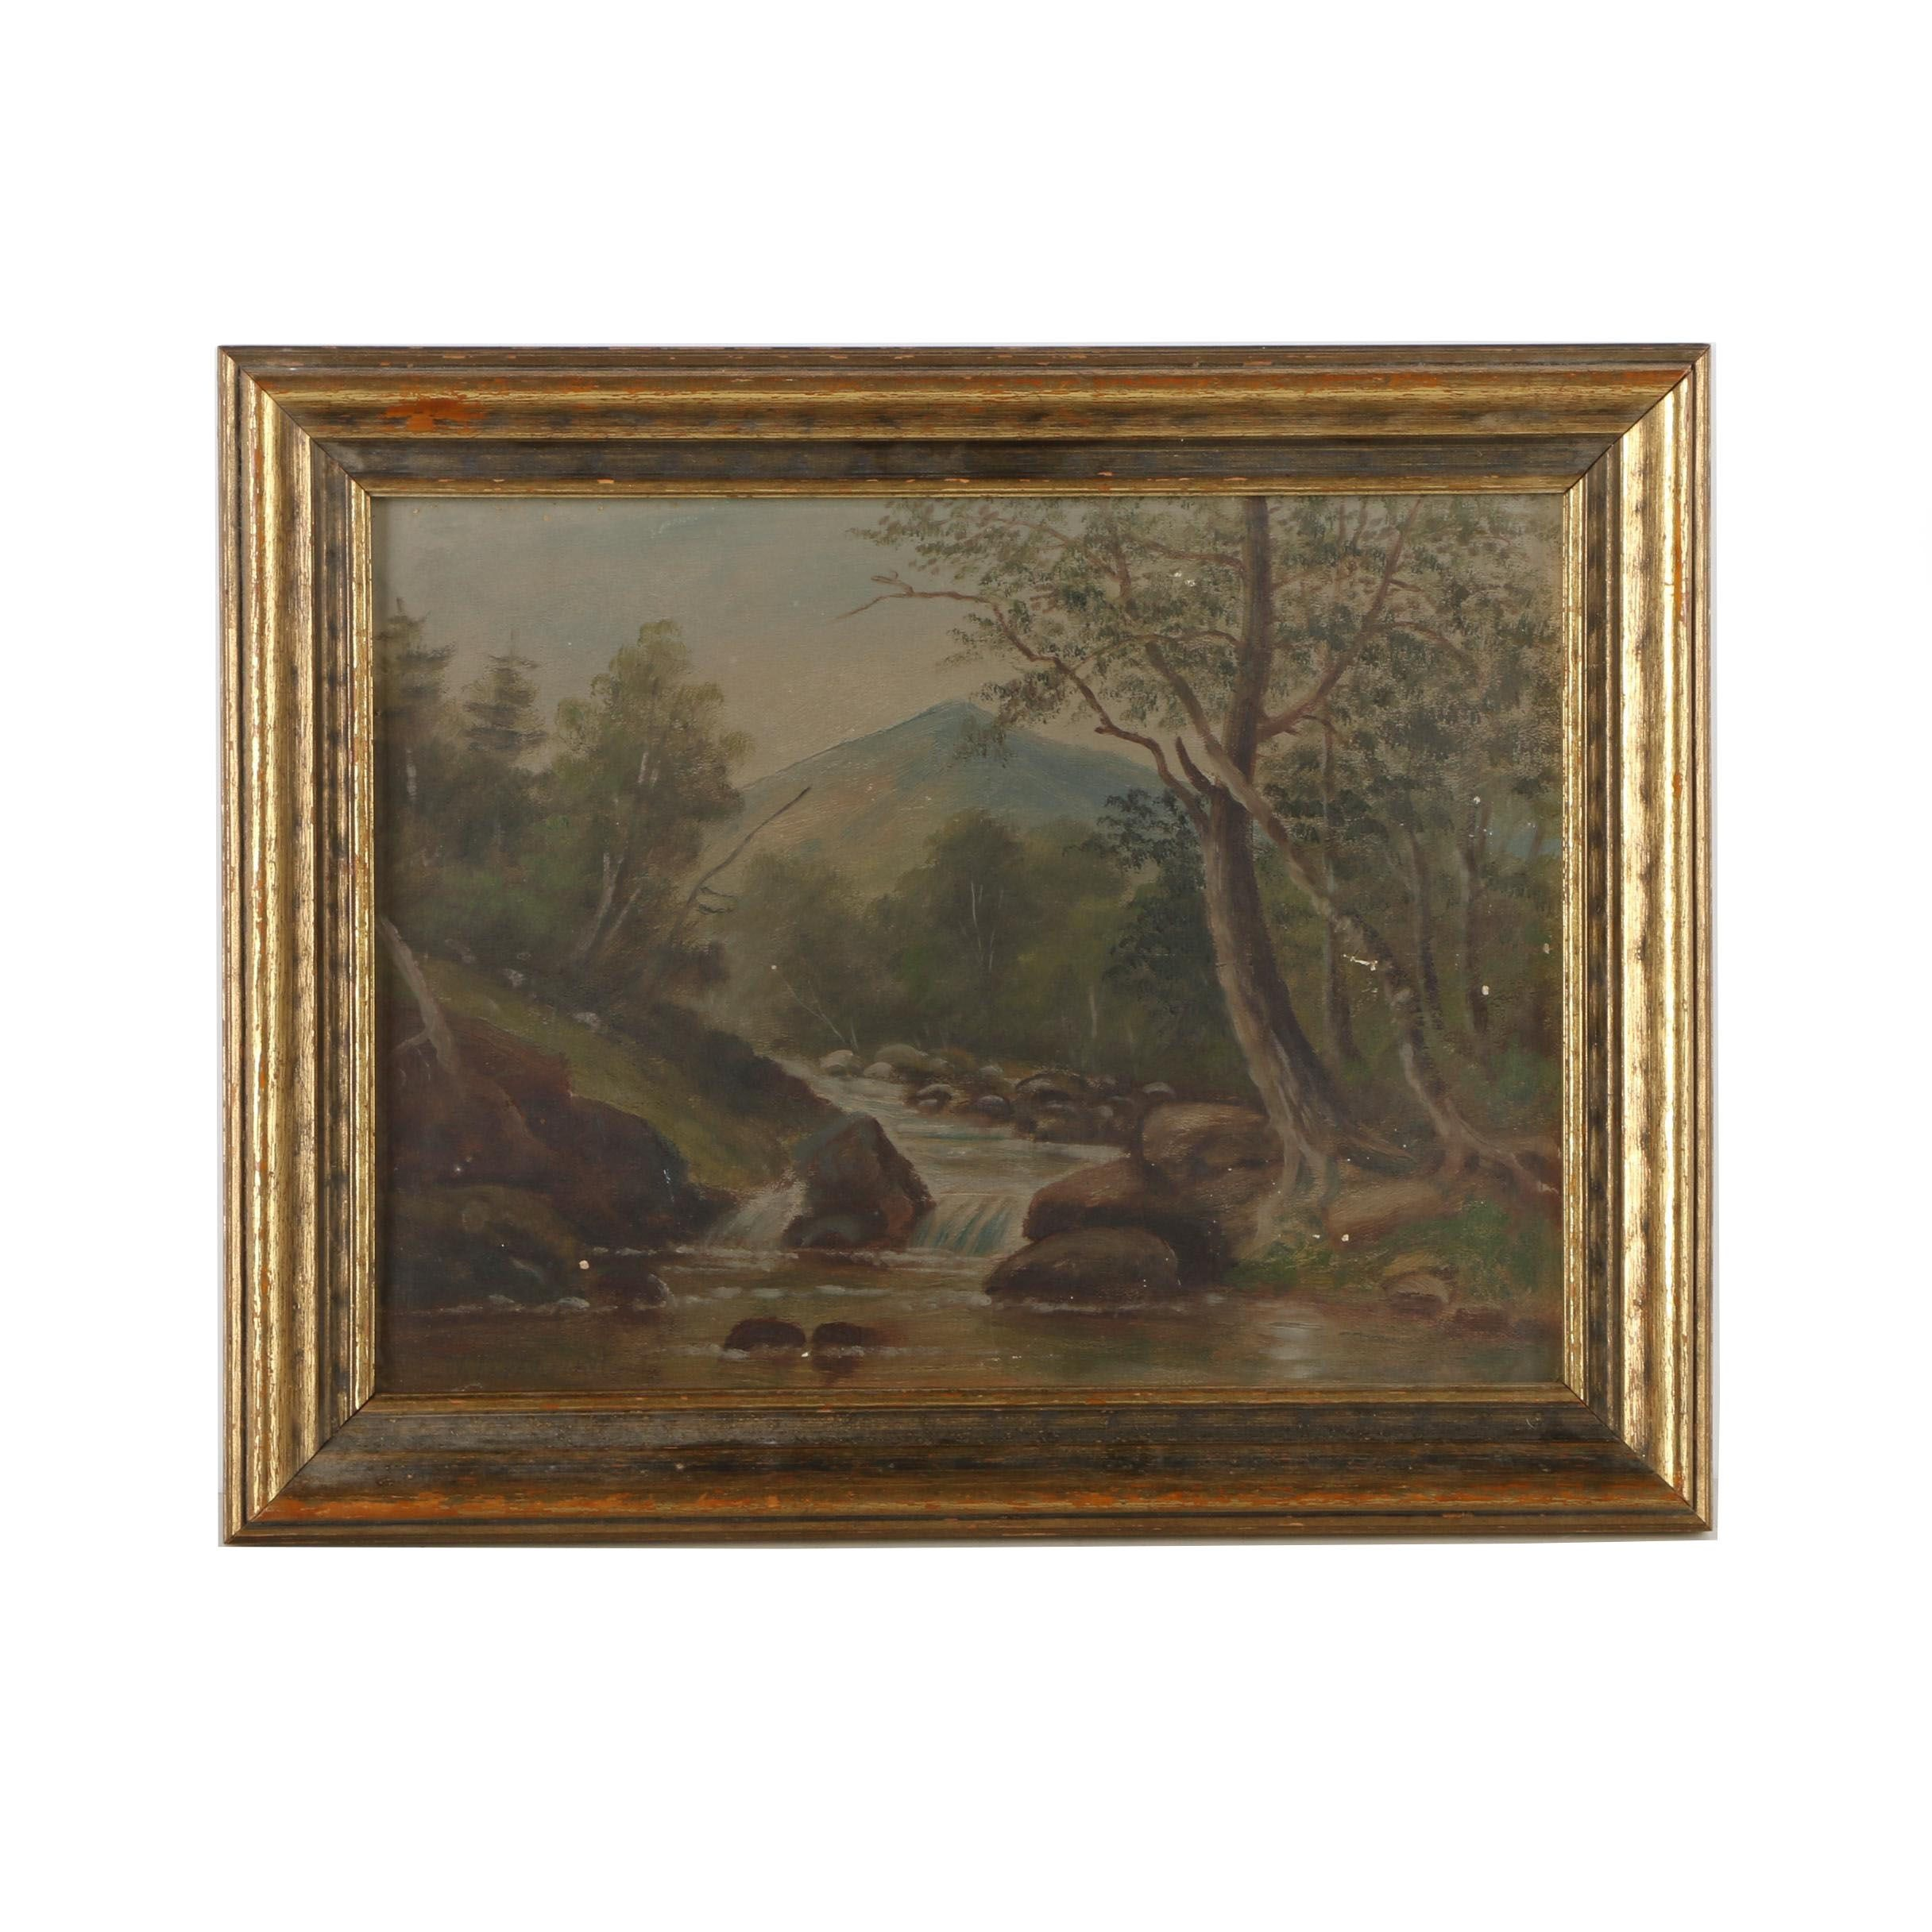 E. W. Parkhurst Oil Painting on Academy Board of Landscape